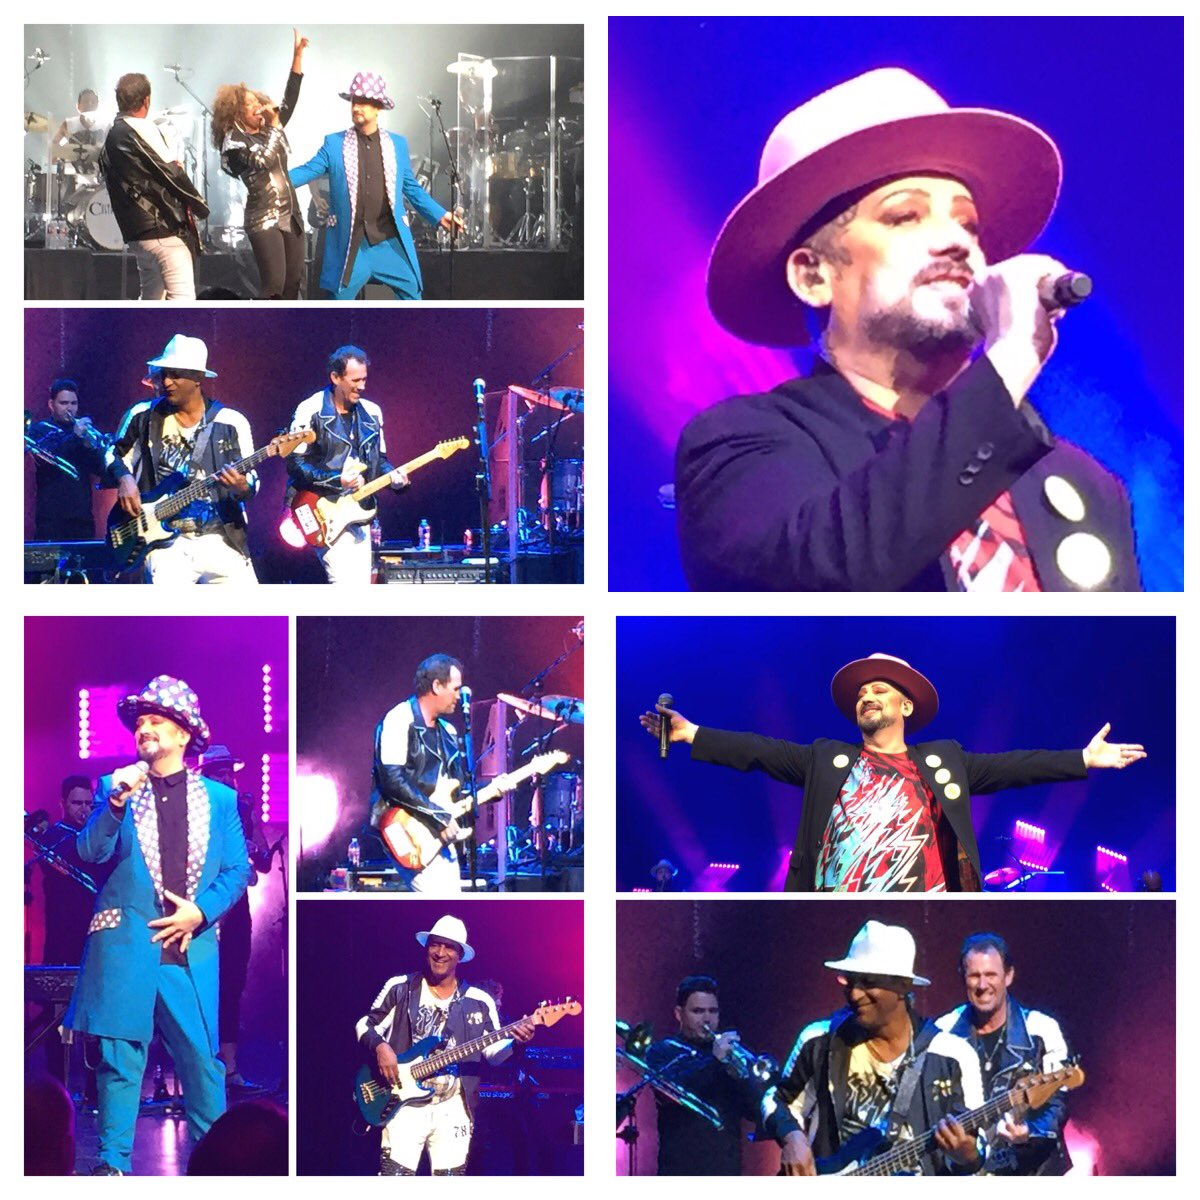 In the Church Of The Poison Mind #CultureClub @VerizonTheatre https://t.co/NxzT1LEpMk